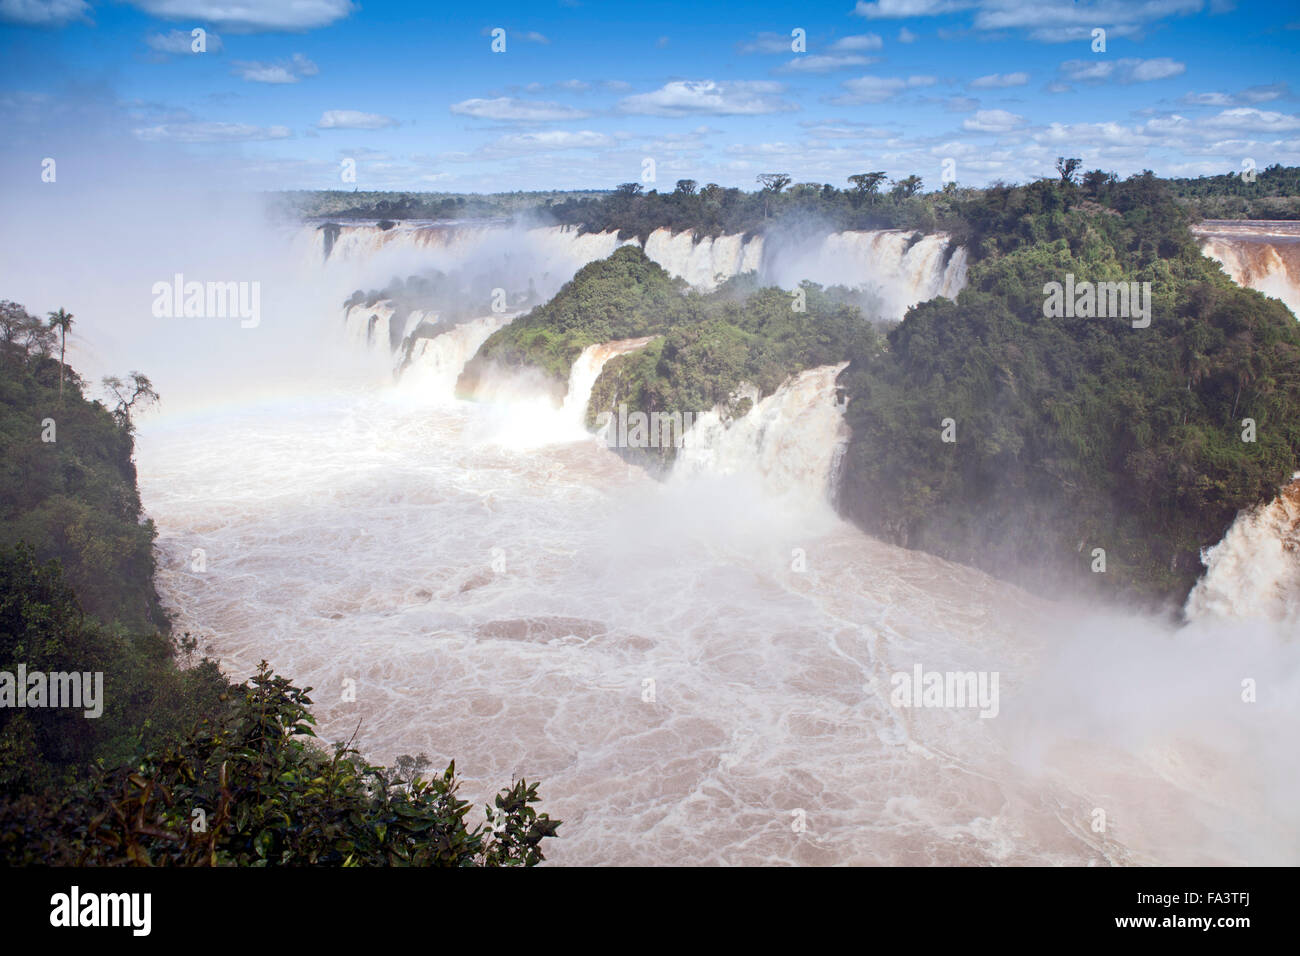 The Iguazu waterfalls on the border of Brazil and Argentina, South America Stock Photo